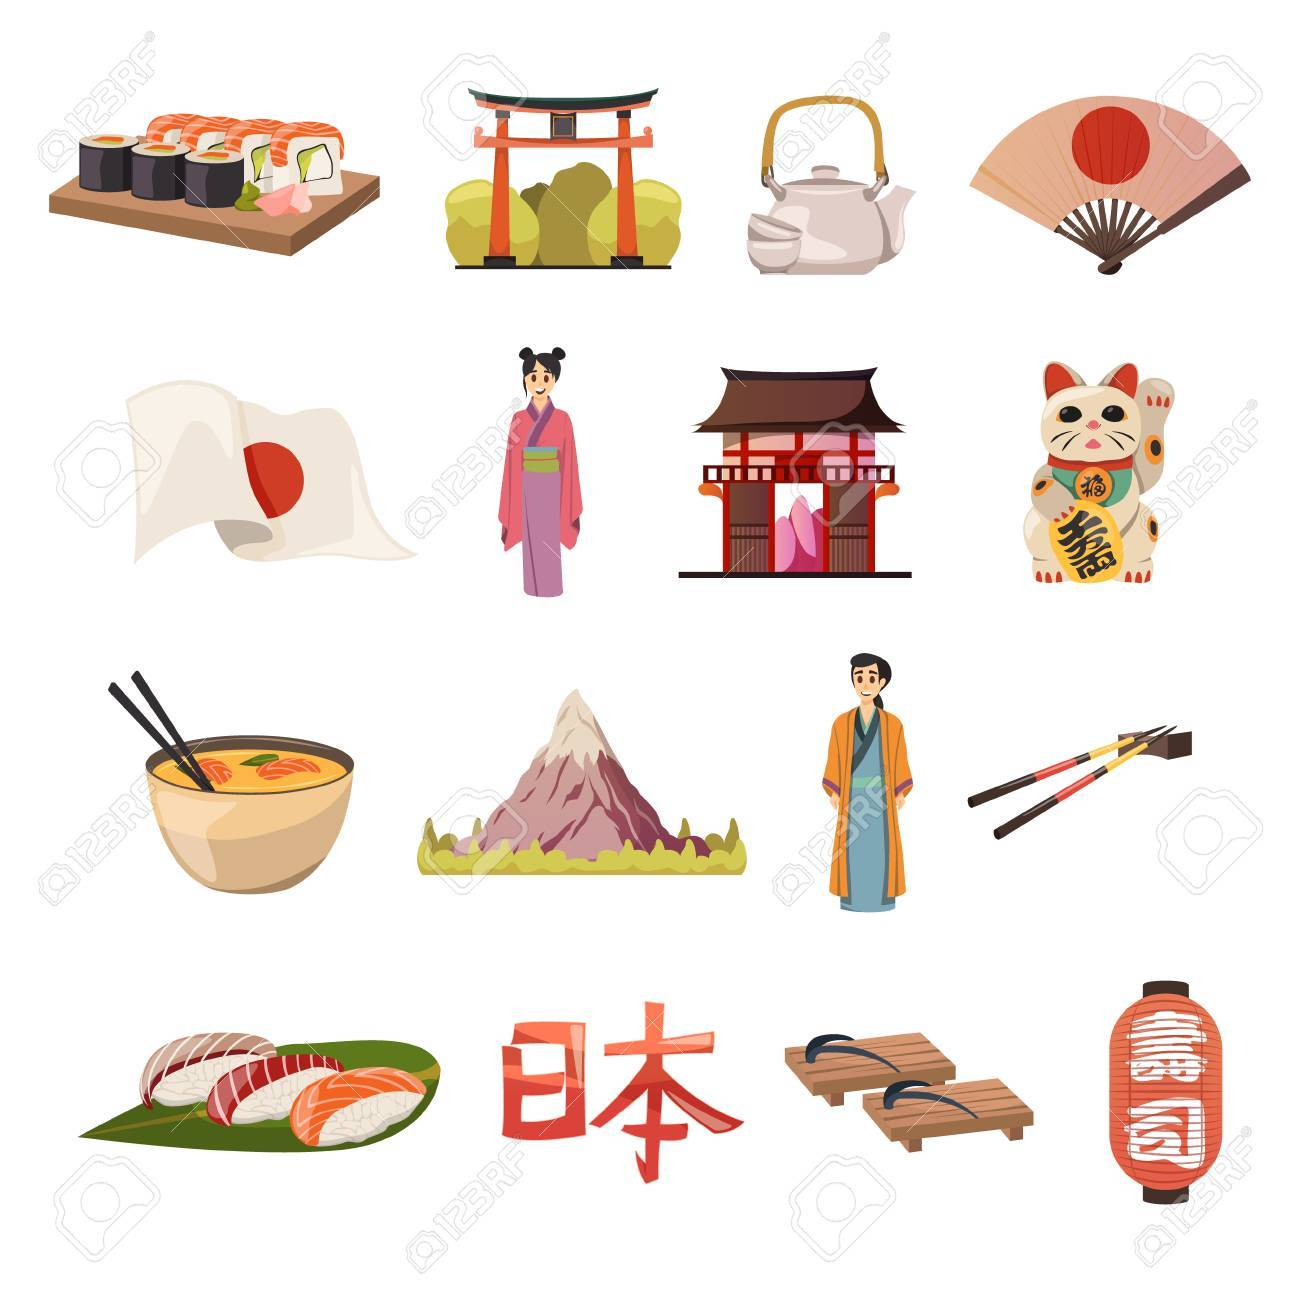 Japanese Culture Symbols Set Vector Illustration Royalty Free